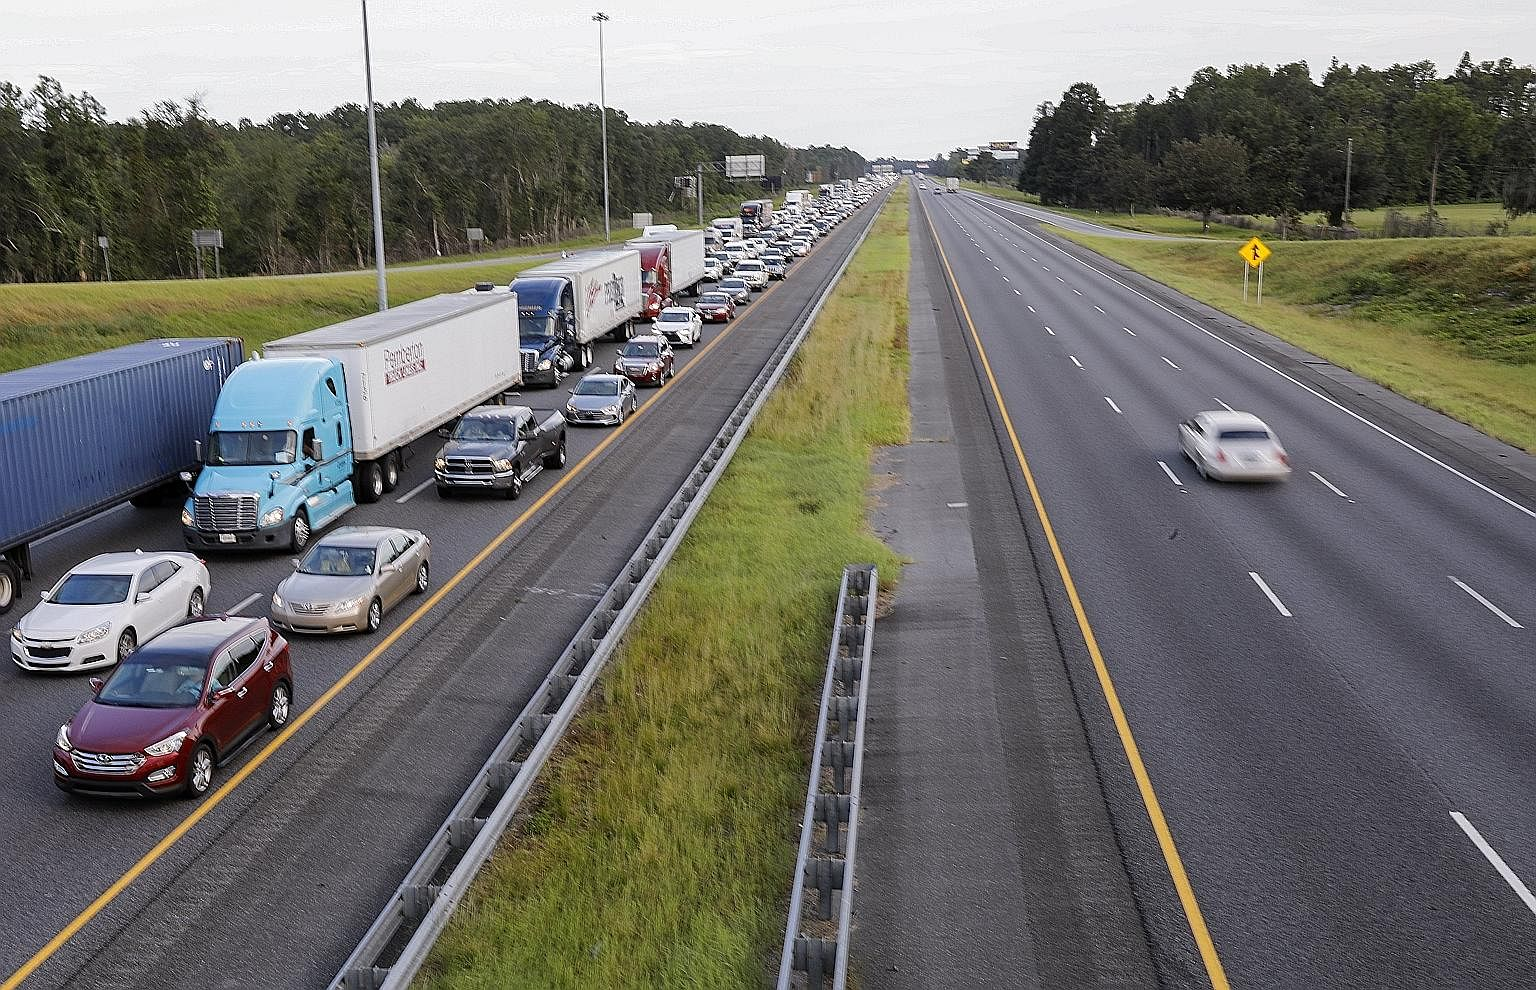 The rush to leave after a state of emergency was declared ahead of Hurricane Irma's expected arrival in Florida this week led to huge traffic jams as millions of people started evacuating from Wednesday.